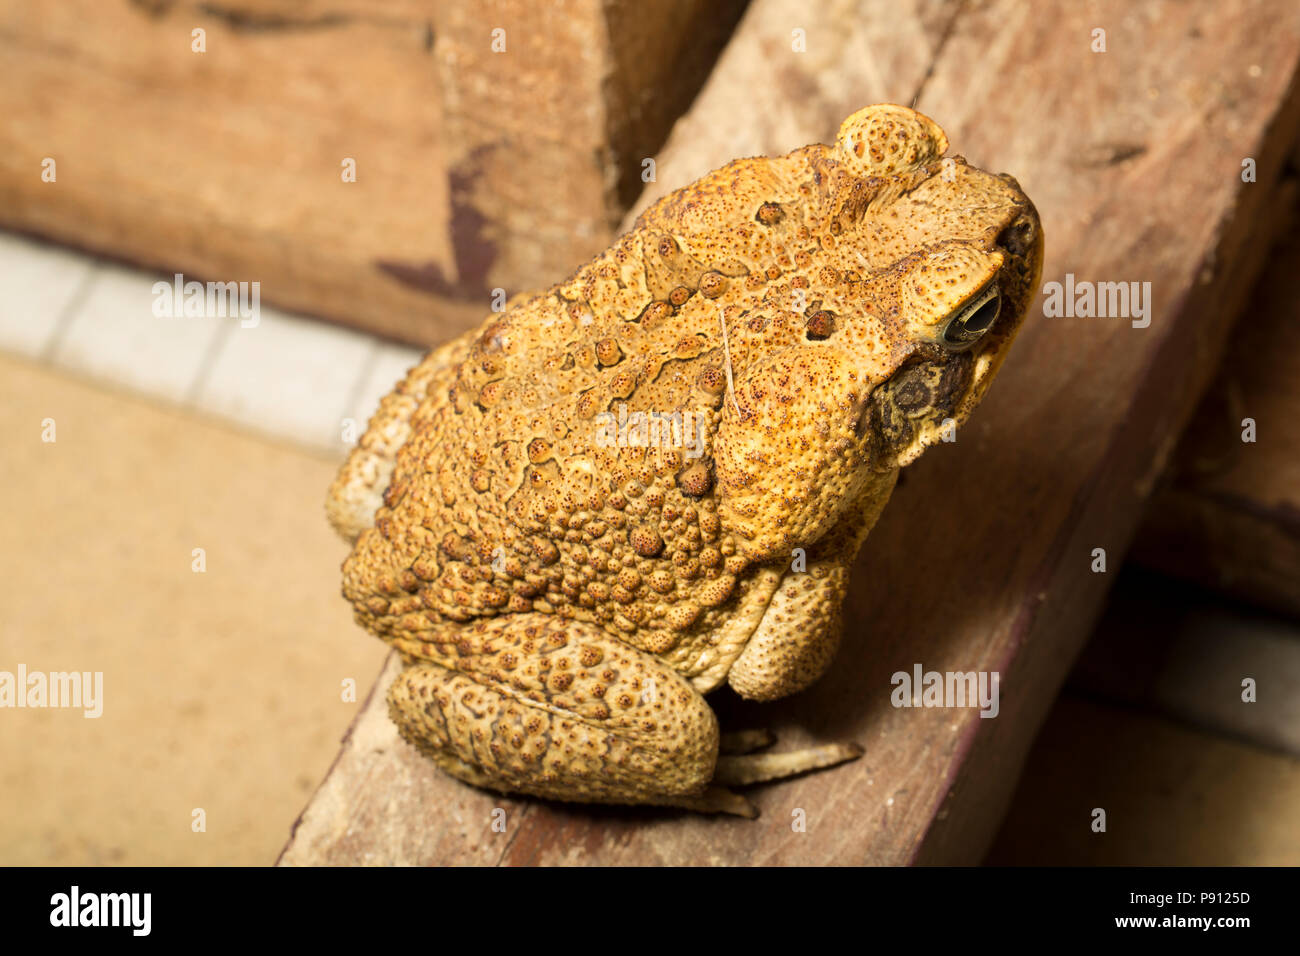 A cane toad, Rhinella marina,  in the jungle of Suriname South America at Raleighvallen nature reserve. The toad can produce toxic chemicals known as  - Stock Image